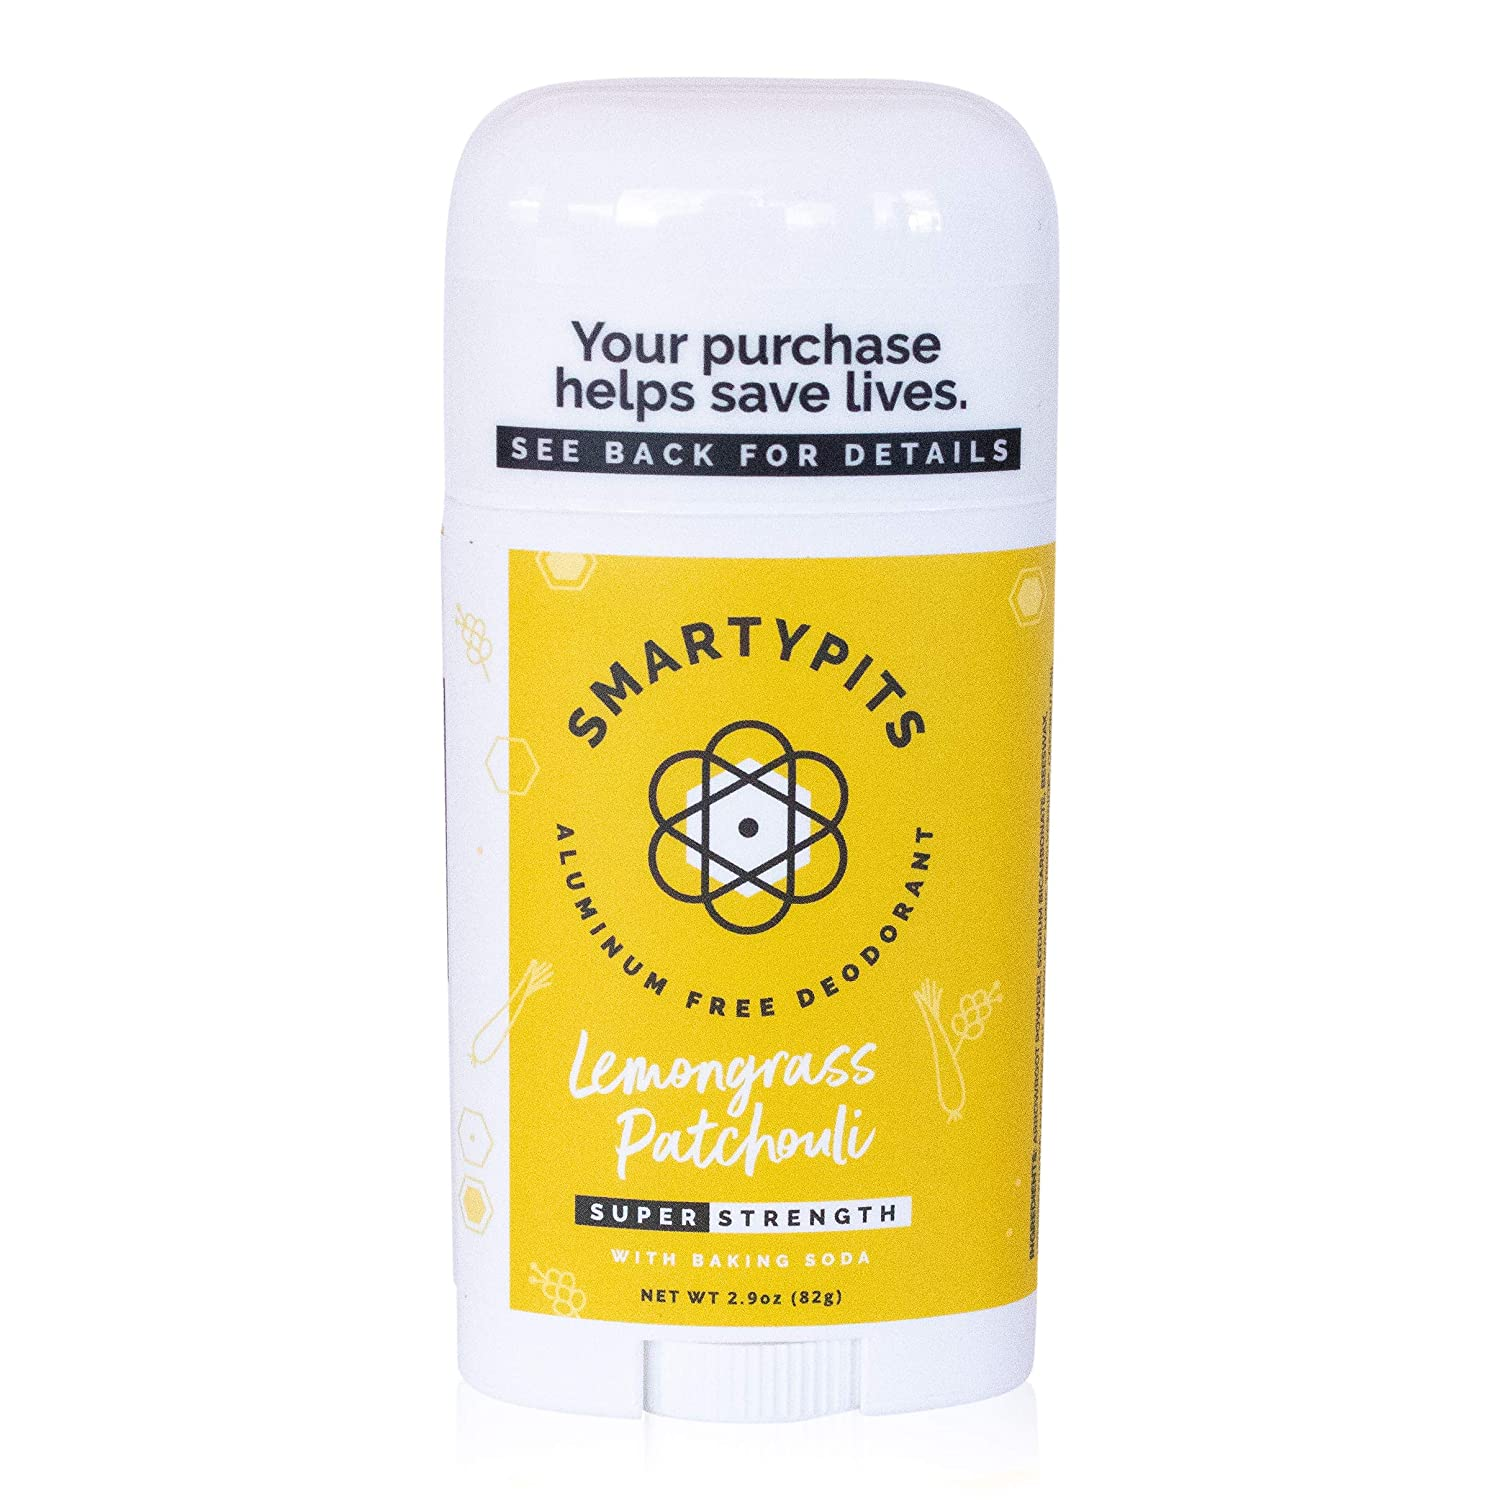 SmartyPits - Natural/Aluminum-Free Deodorant (with baking soda) Paraben Free, Phthalate Free, PROPYLENE GLYCOL FREE, Not Tested on Animals | 2.9oz (Lemongrass Patchouli)